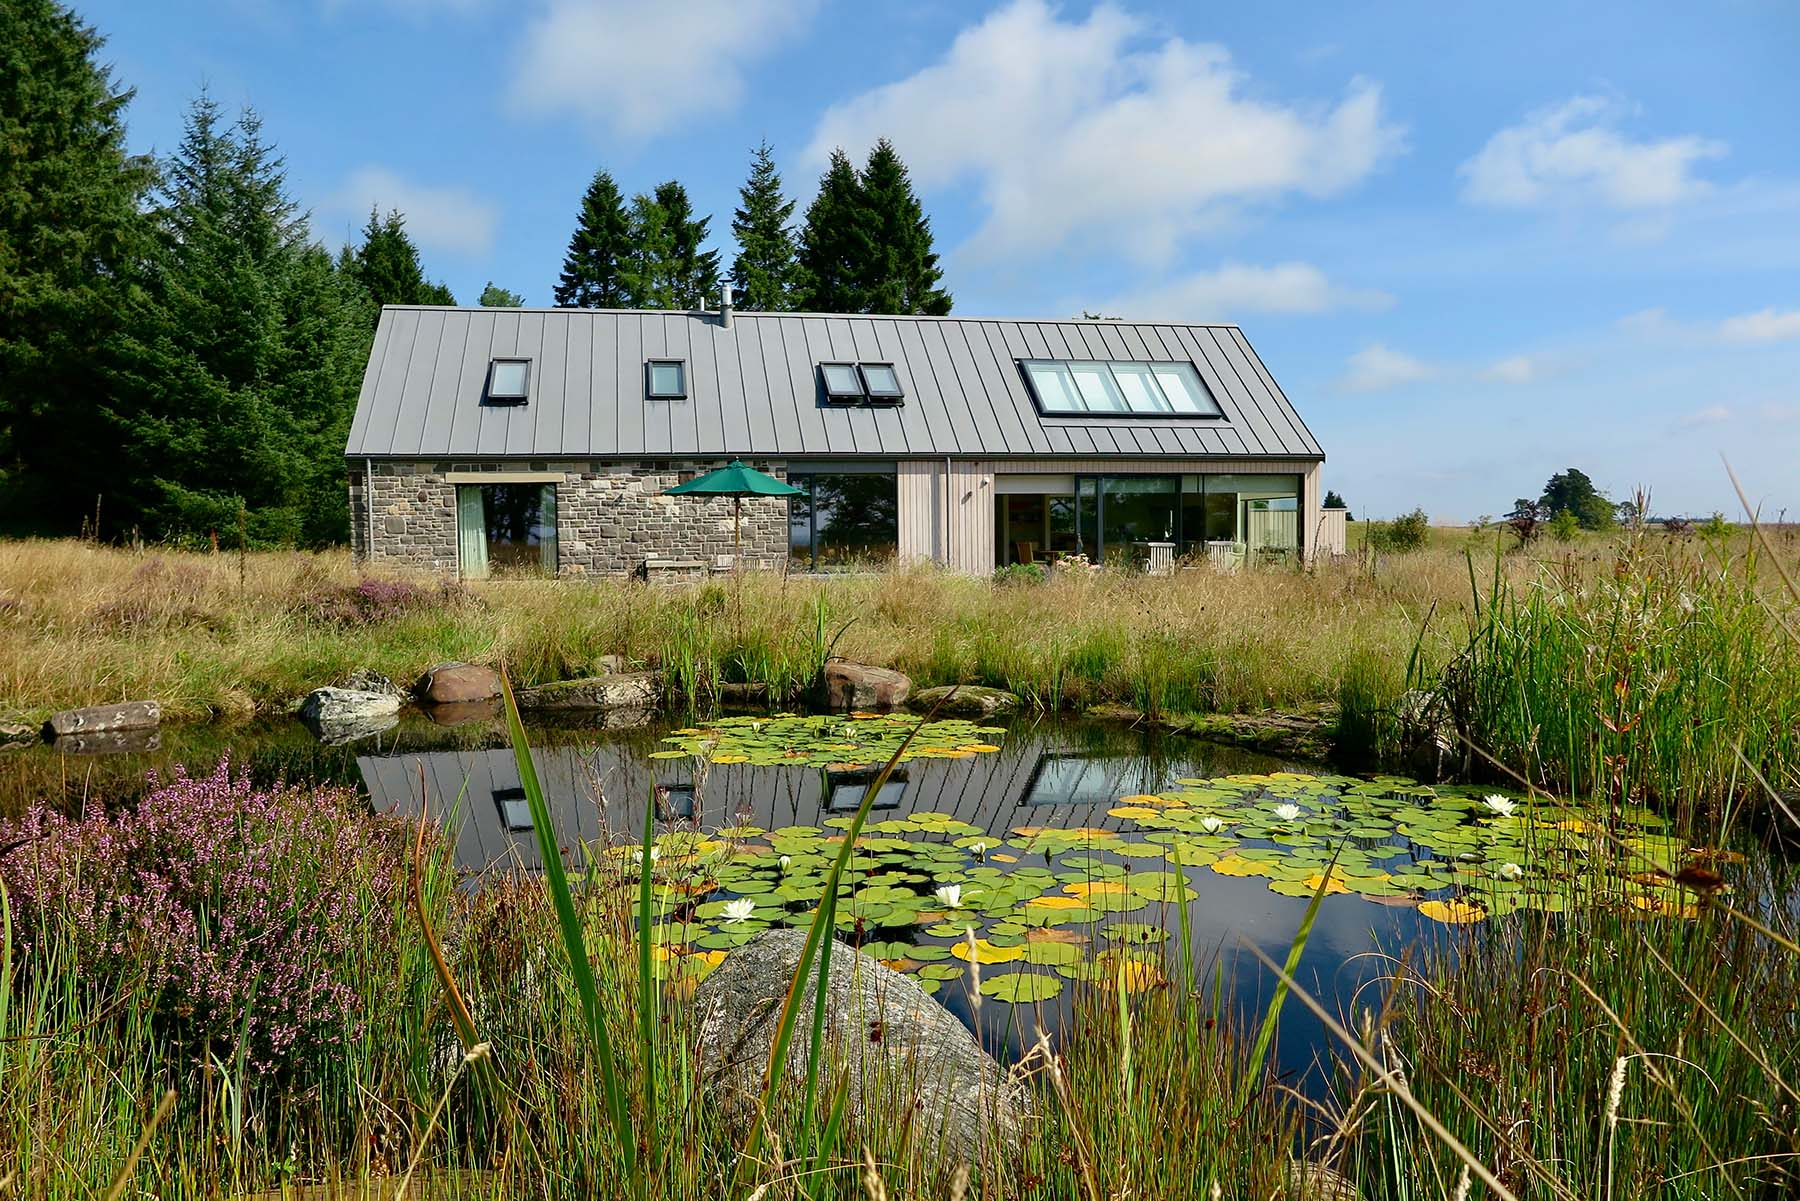 NATURAL POND IN IDYLLIC RURAL SETTING